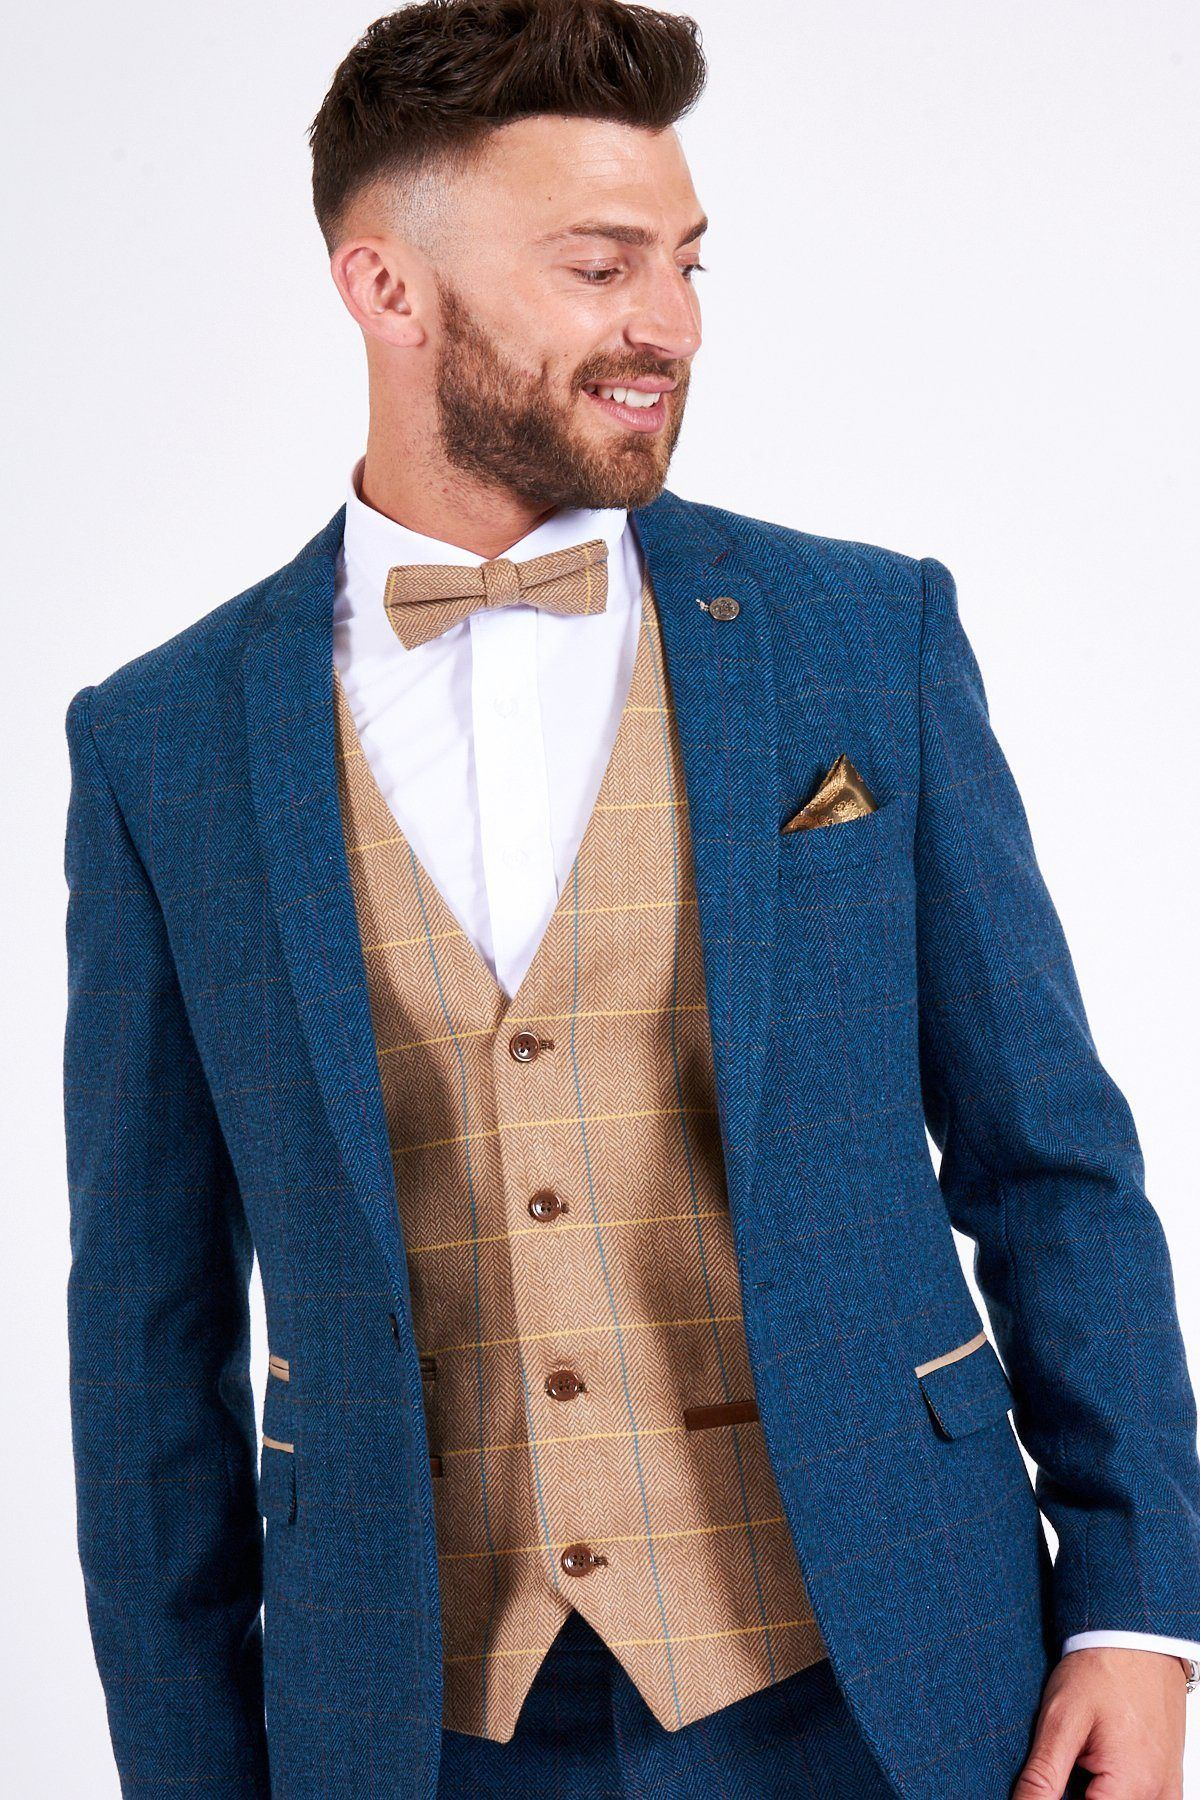 DION - Tweed Suit With DX7 Oak Waistcoat - Marc Darcy  473464816